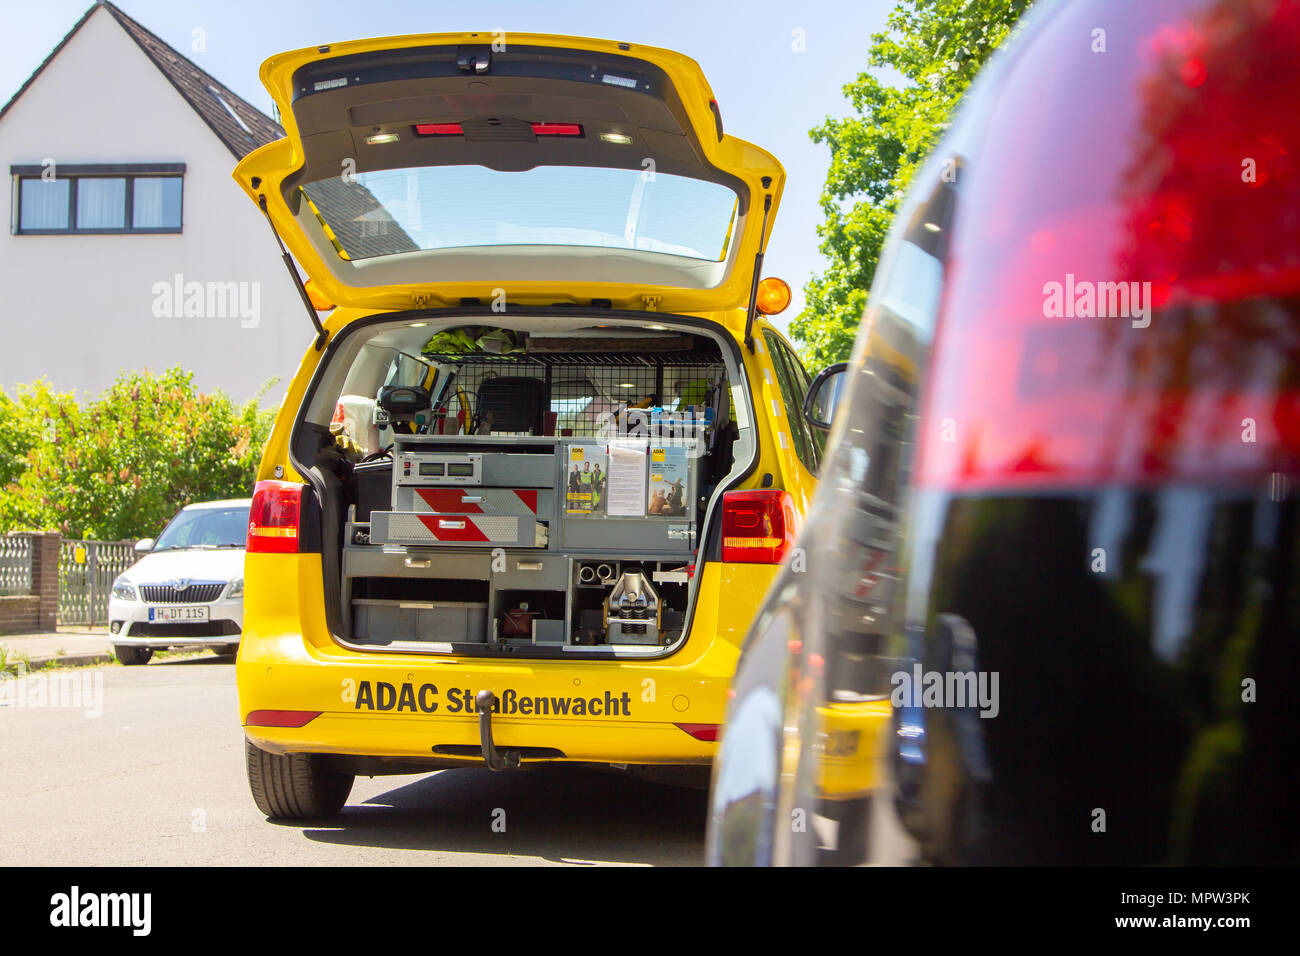 HANNOVER / GERMANY - MAY 21, 2018: Service car from ADAC, german automobile club stands on a street. - Stock Image